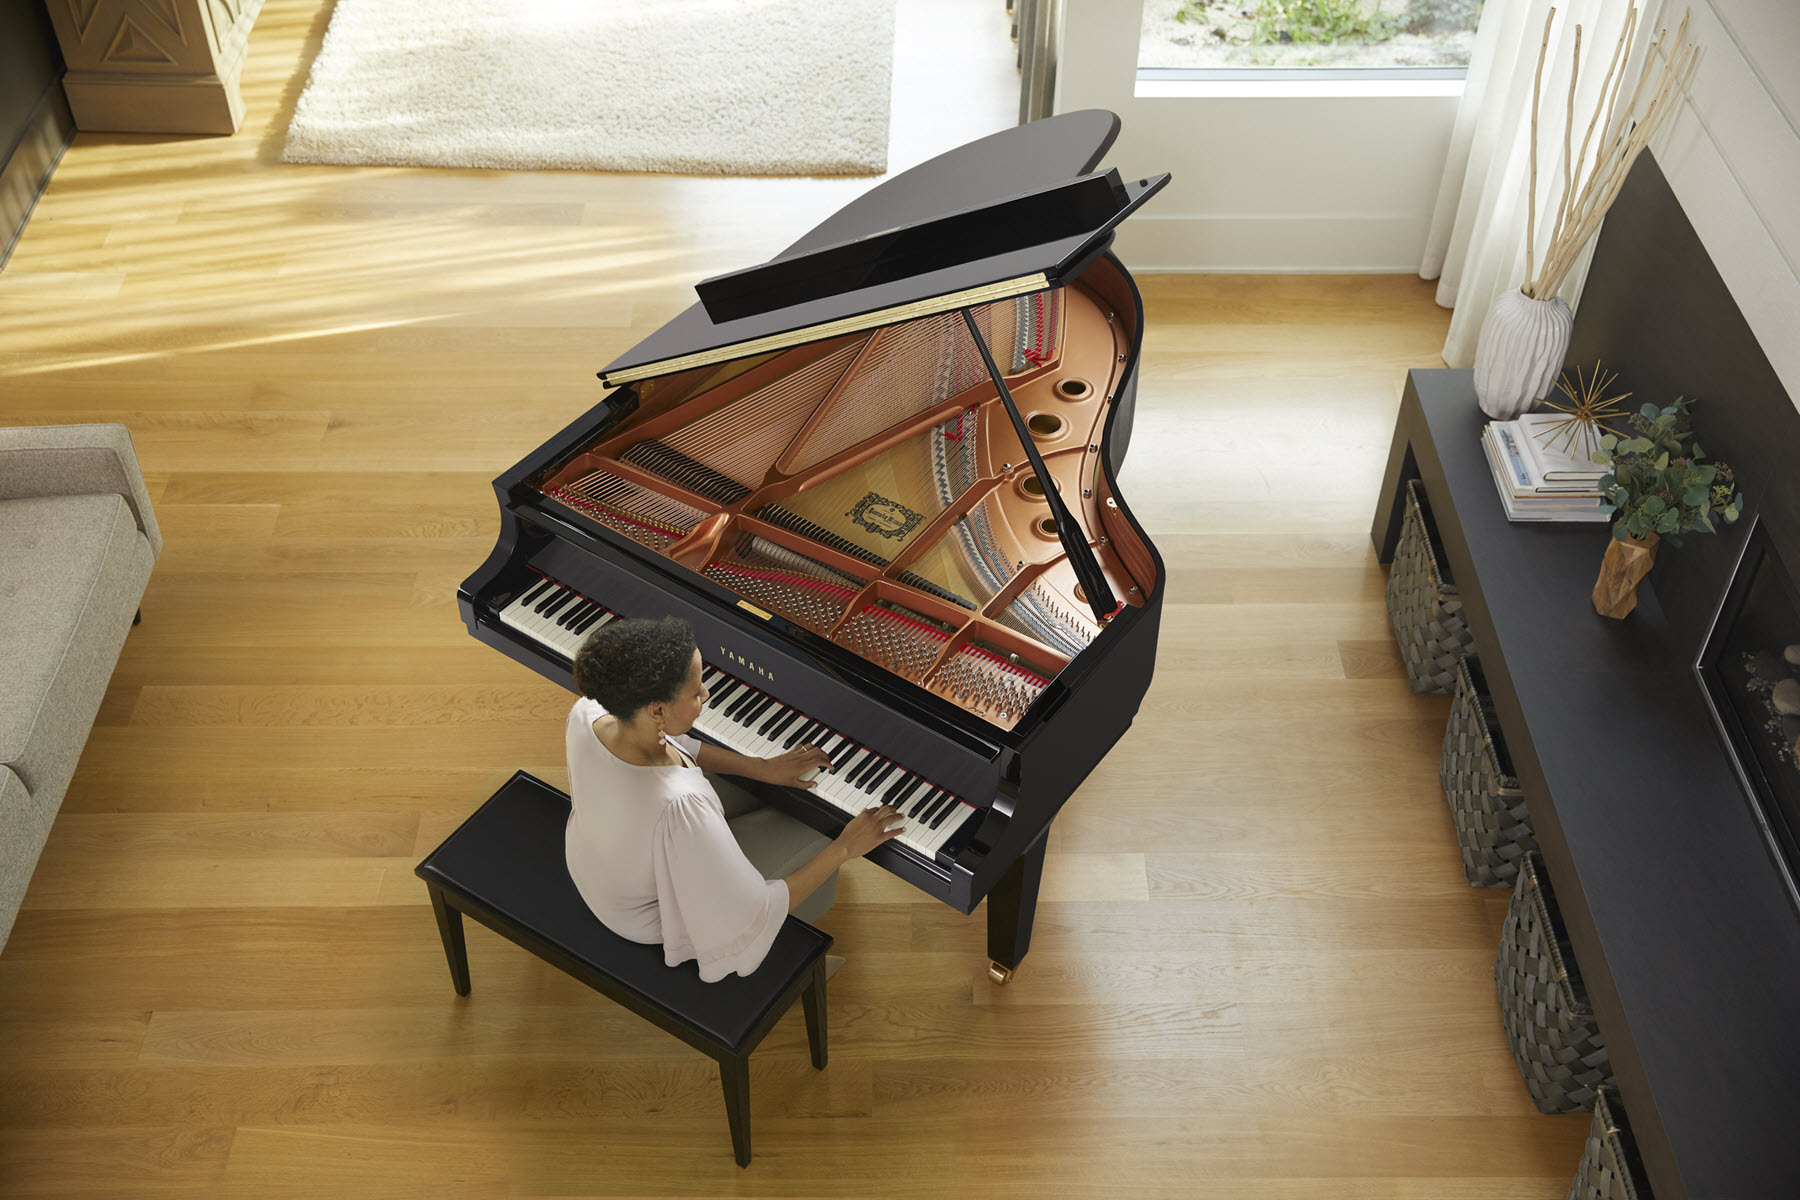 Someone playing a grand piano in a living room as seen from above.